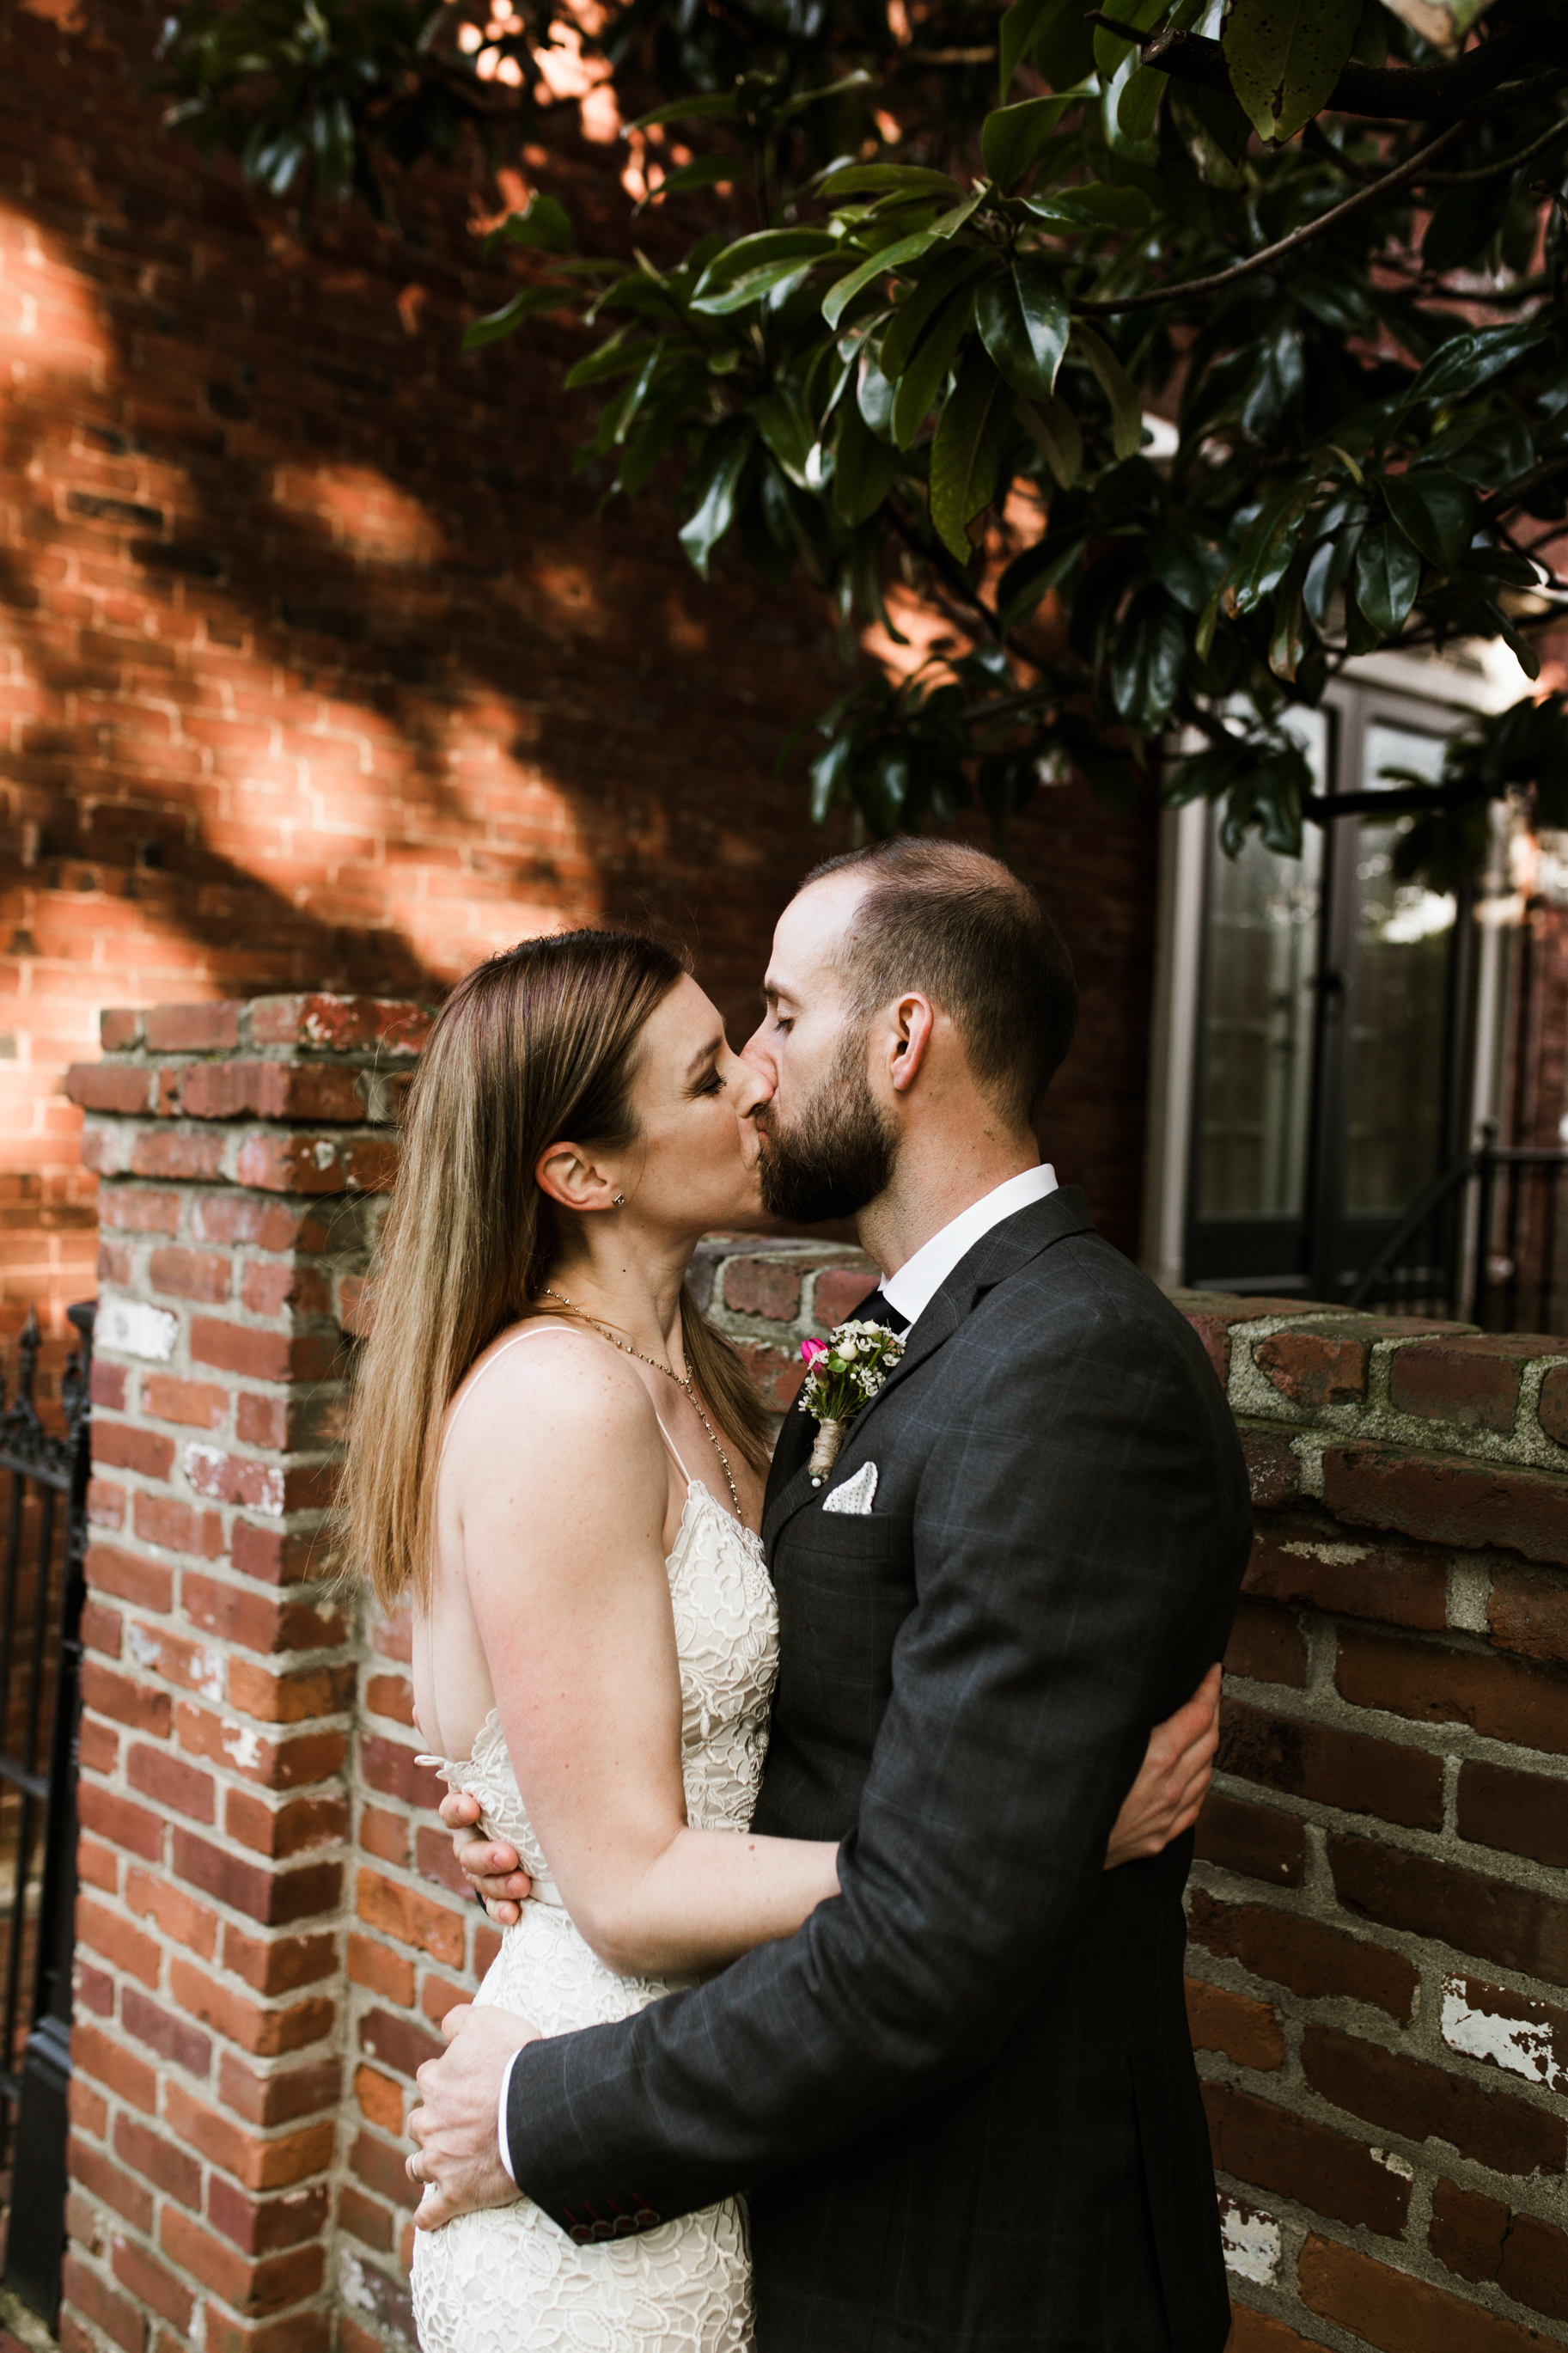 Louisville Courthouse Wedding Louisville Wedding Photographer 2018 Crystal Ludwick Photo Louisville Wedding Photographer Kentucky Wedding Photographer (70 of 76).jpg